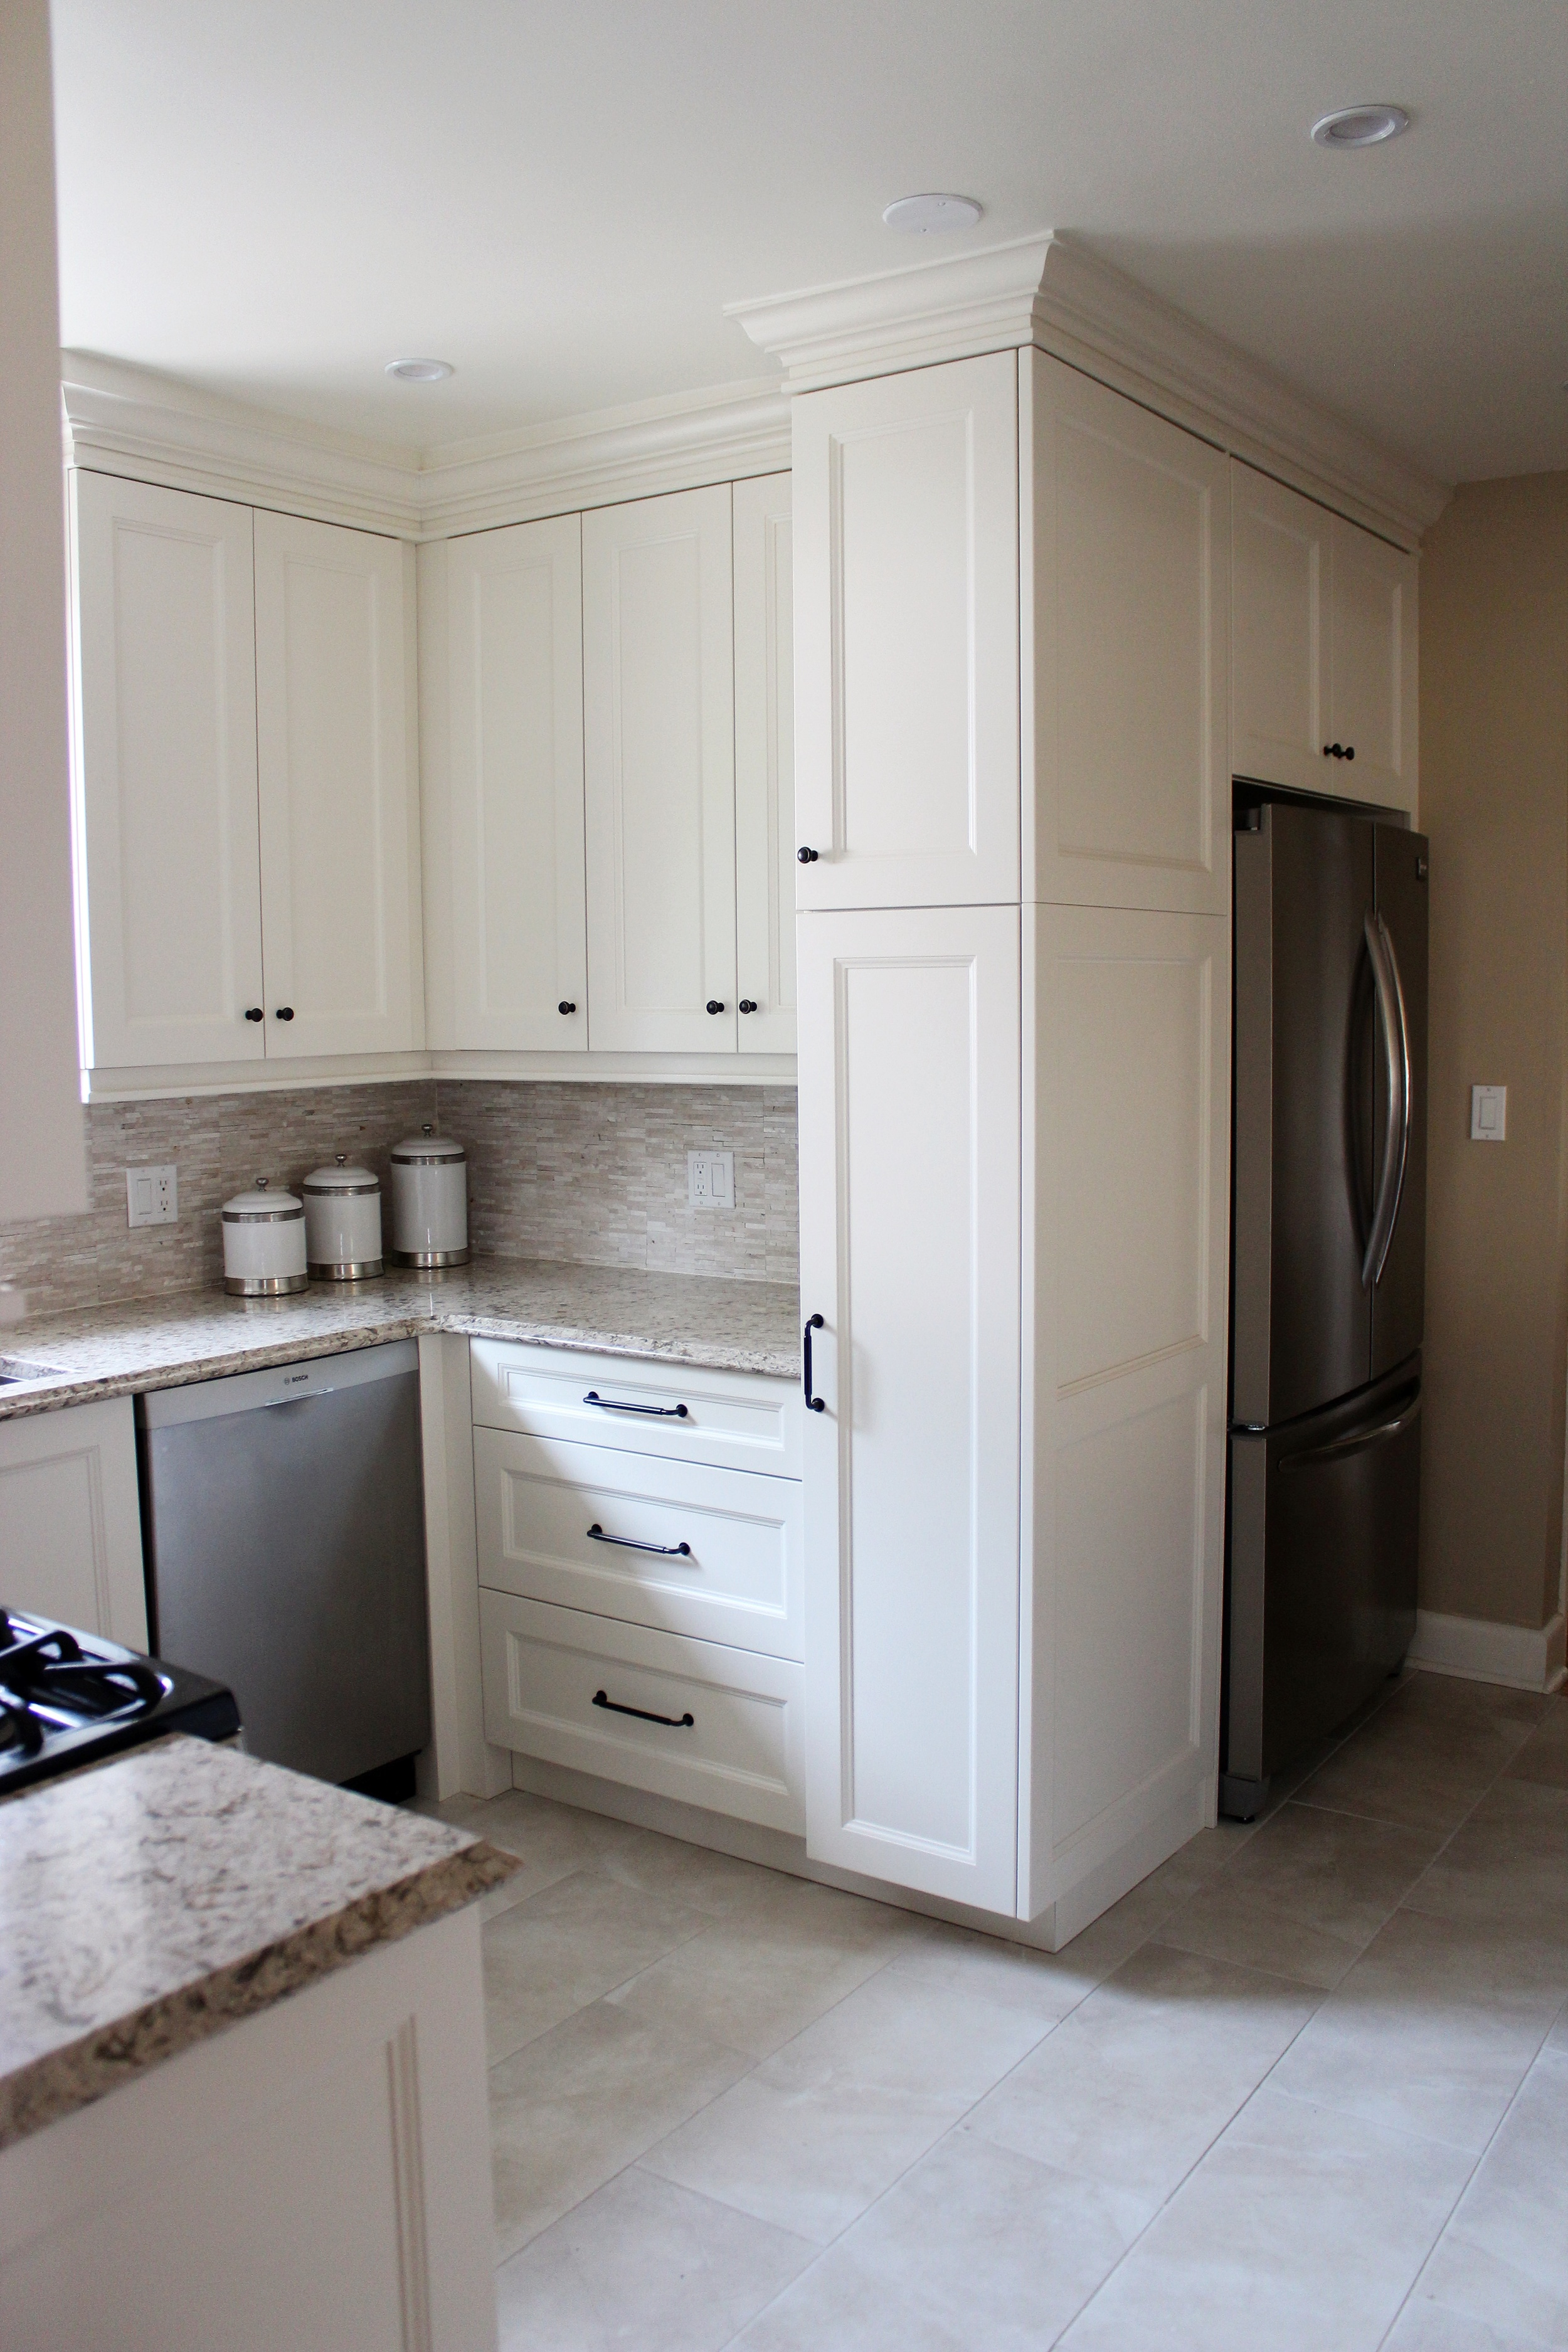 Full height pantry uses ALL the space: helps to build in the fridge, as well as amp up storage.